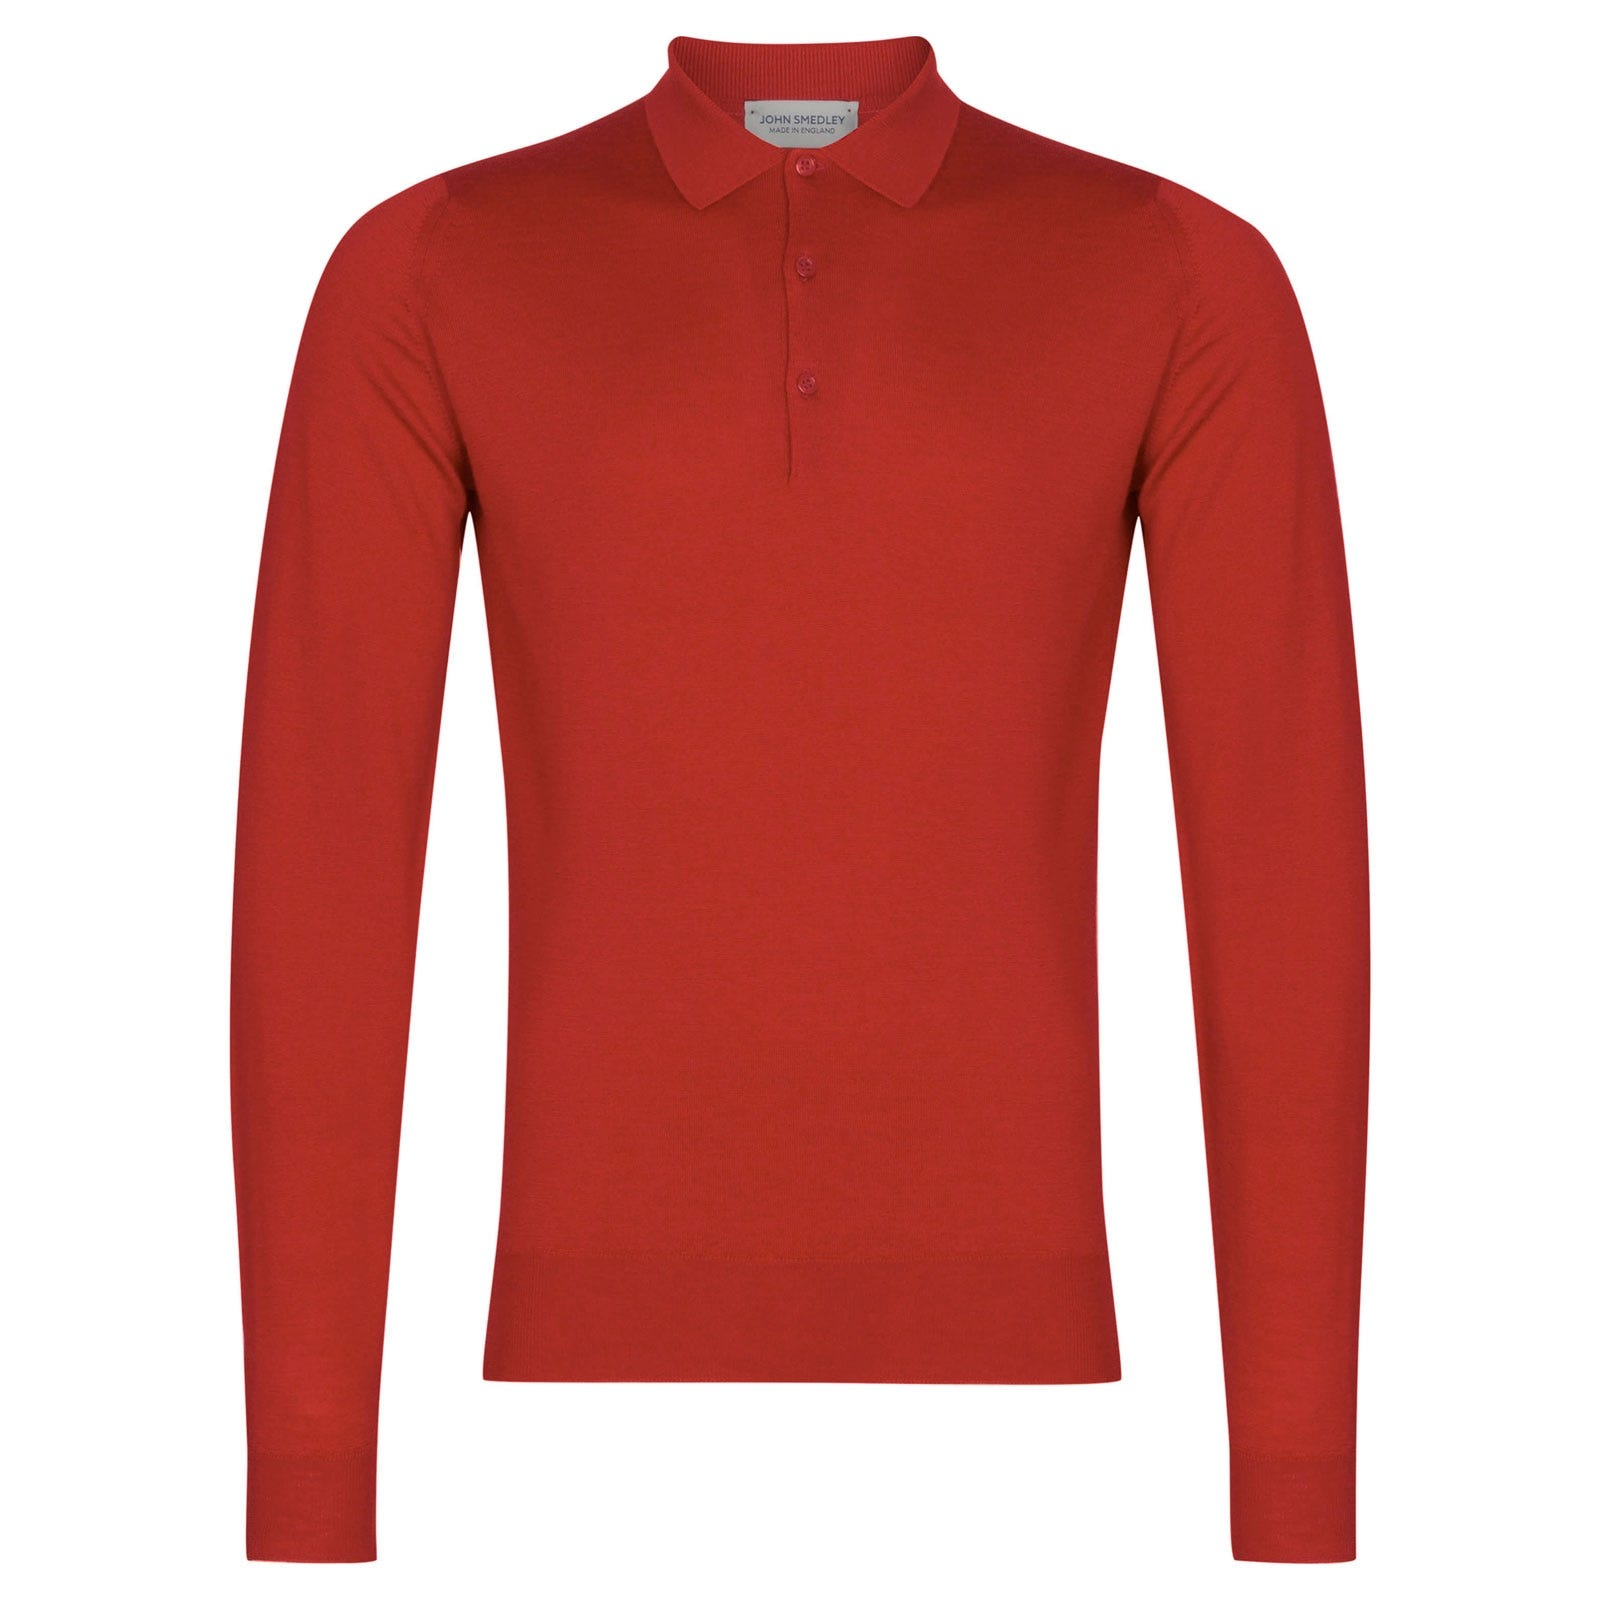 John Smedley Belper in Red Admiral Shirt-XLG